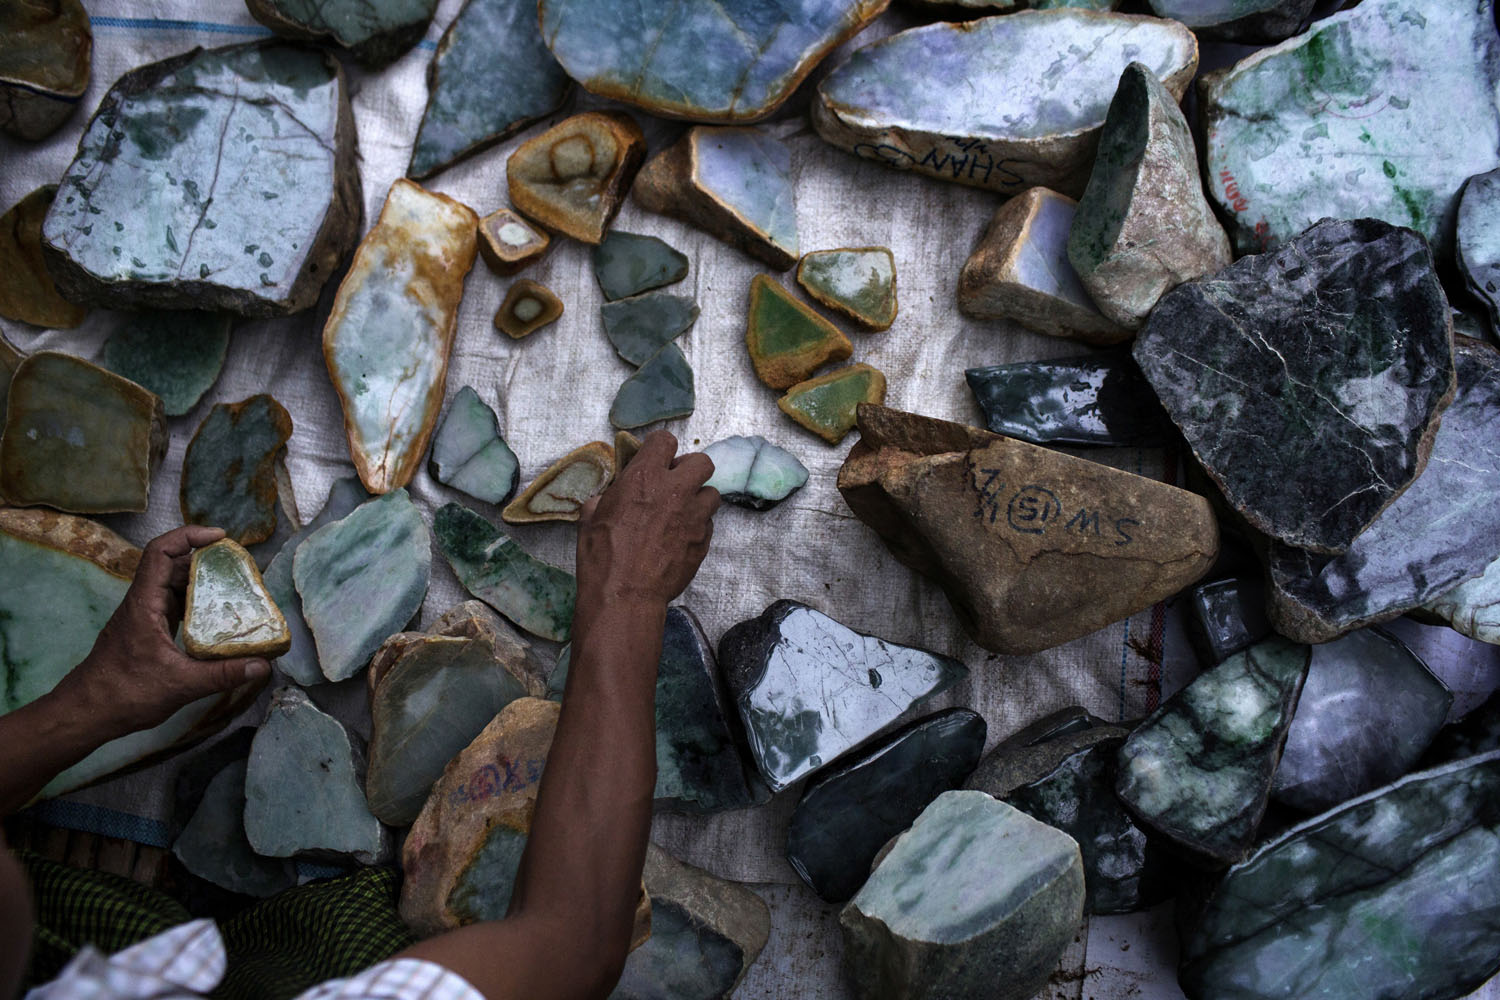 The New York Times: Addiction and Suffering in Myanmar's Jade IndustryA Burmese dealer arranges chunks of jade at a market stall in Mandalay, Myanmar, July 20, 2014.